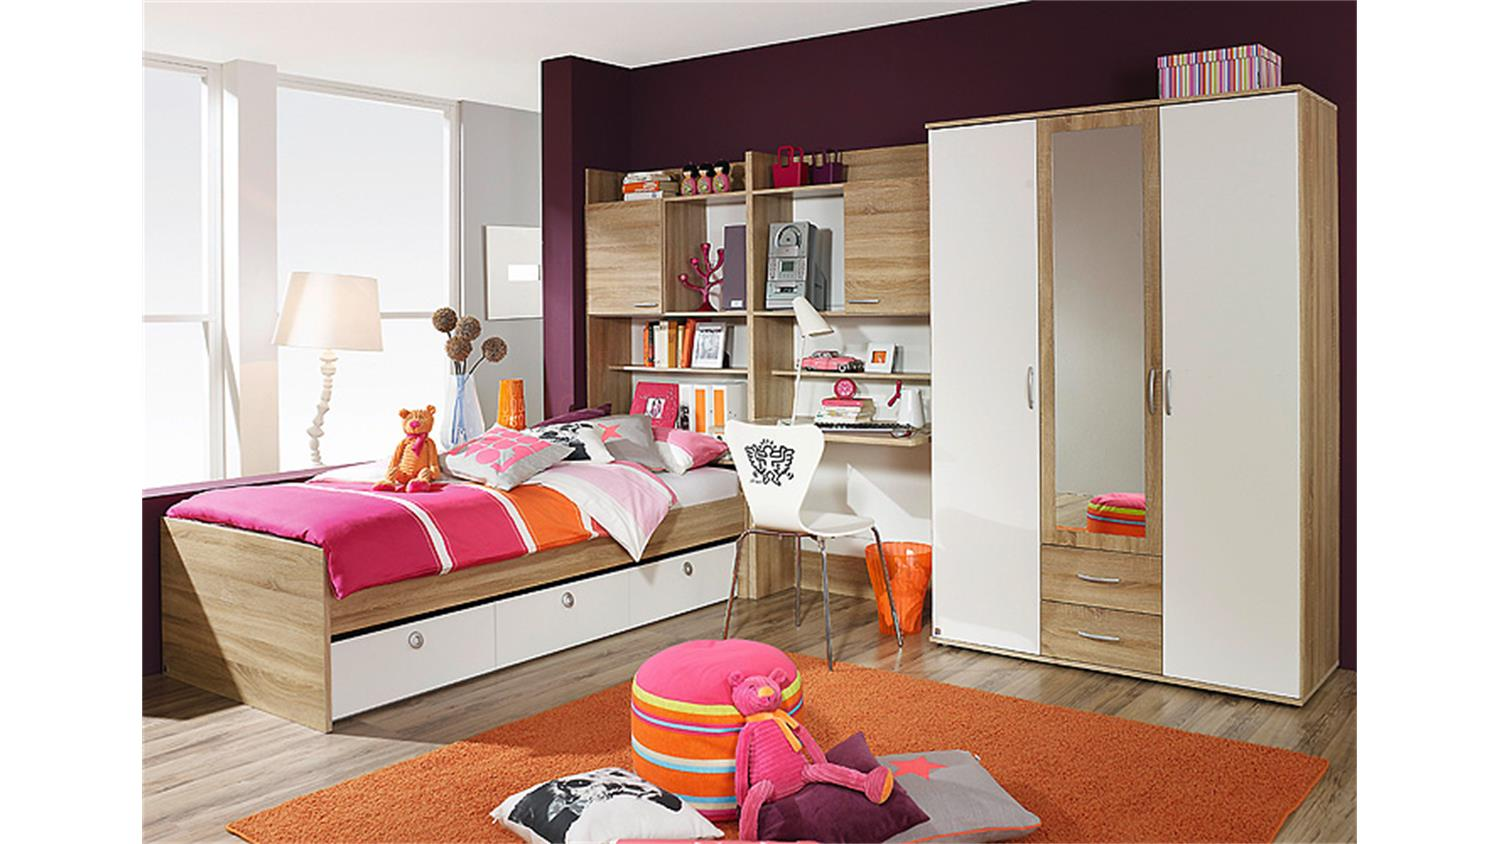 jugendzimmer set 4 emilio sonoma eiche und wei 5 tlg. Black Bedroom Furniture Sets. Home Design Ideas